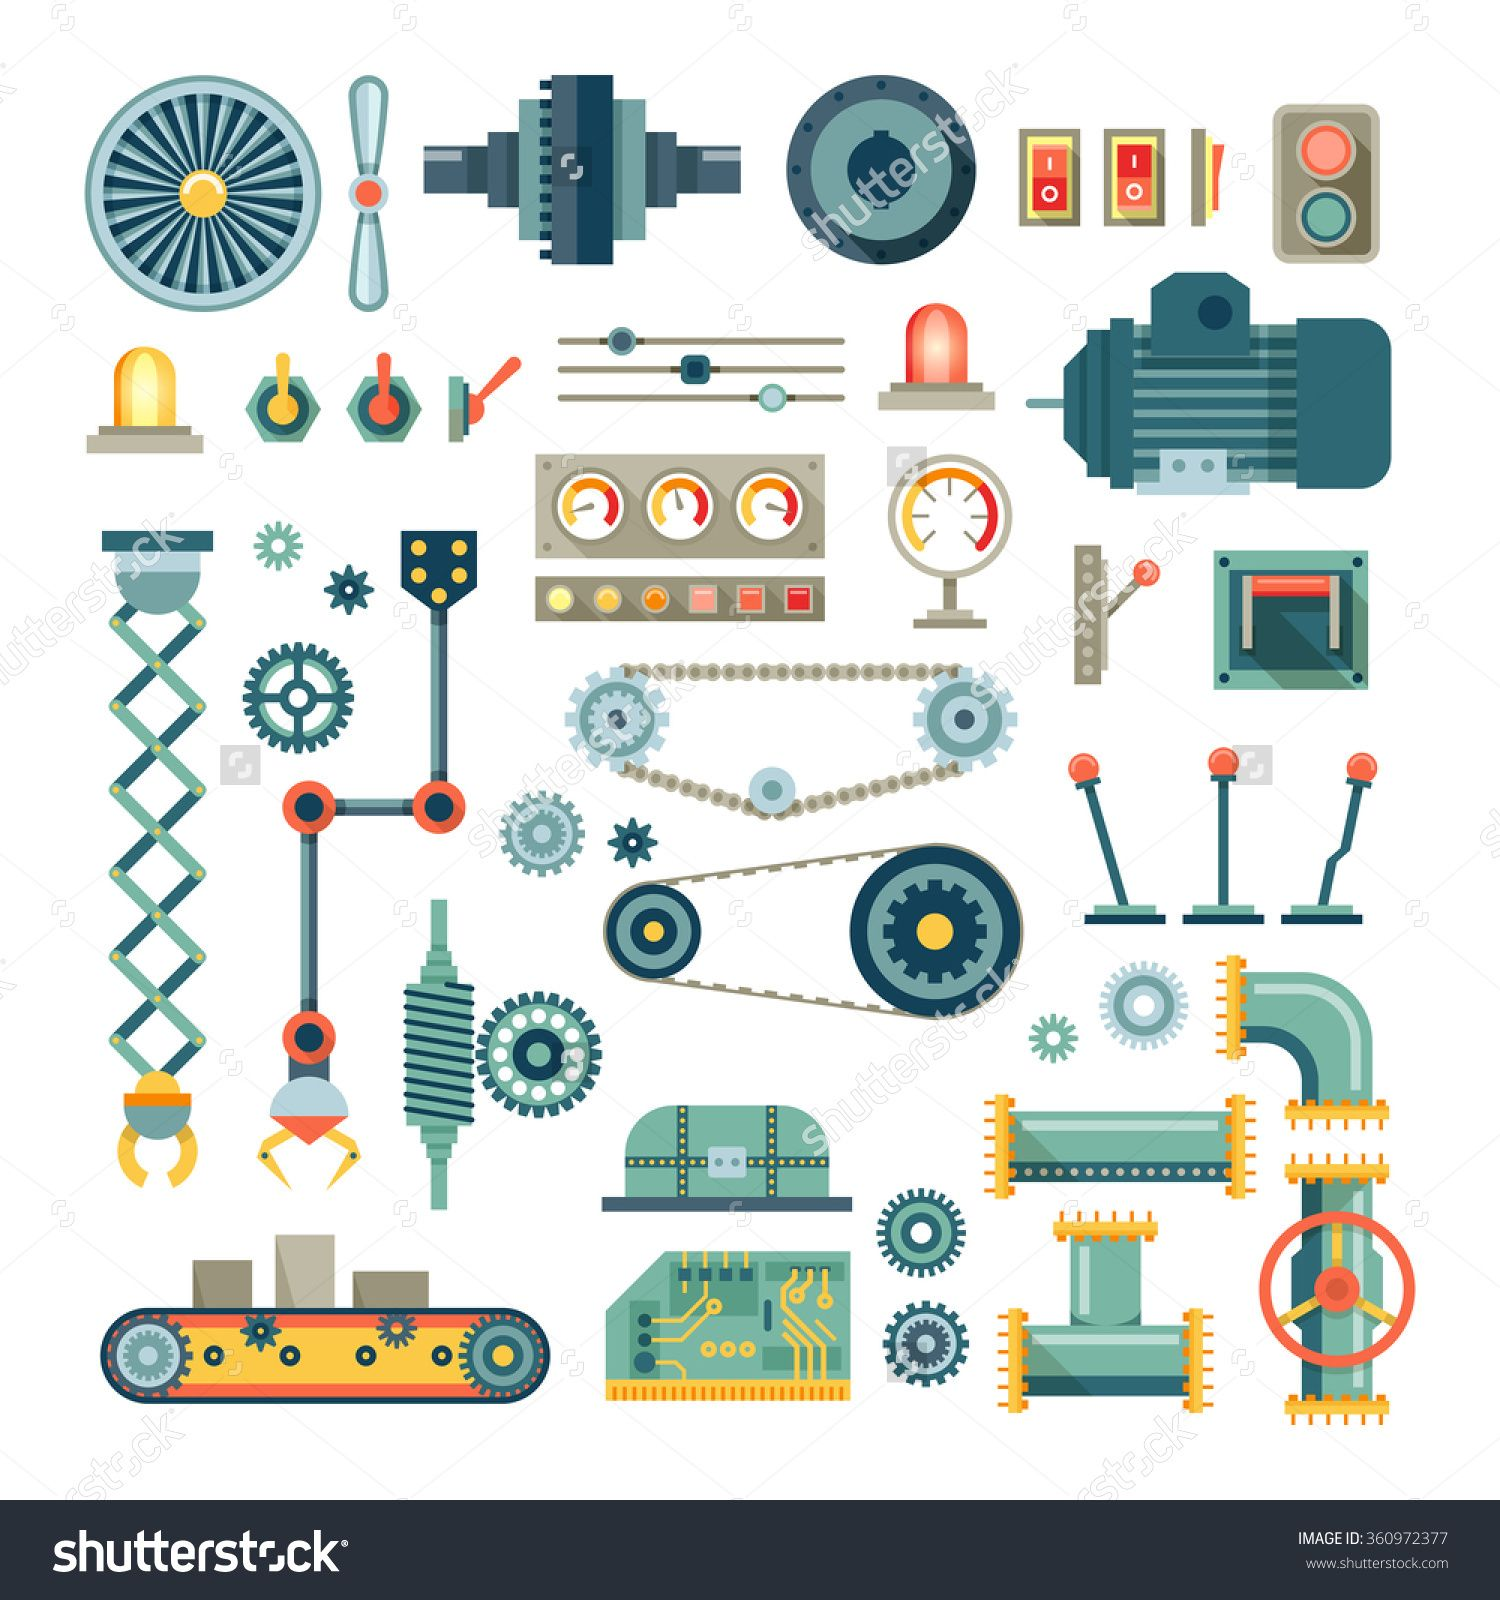 Parts Of Machinery And Robot Flat Icons Set. Mechanical.